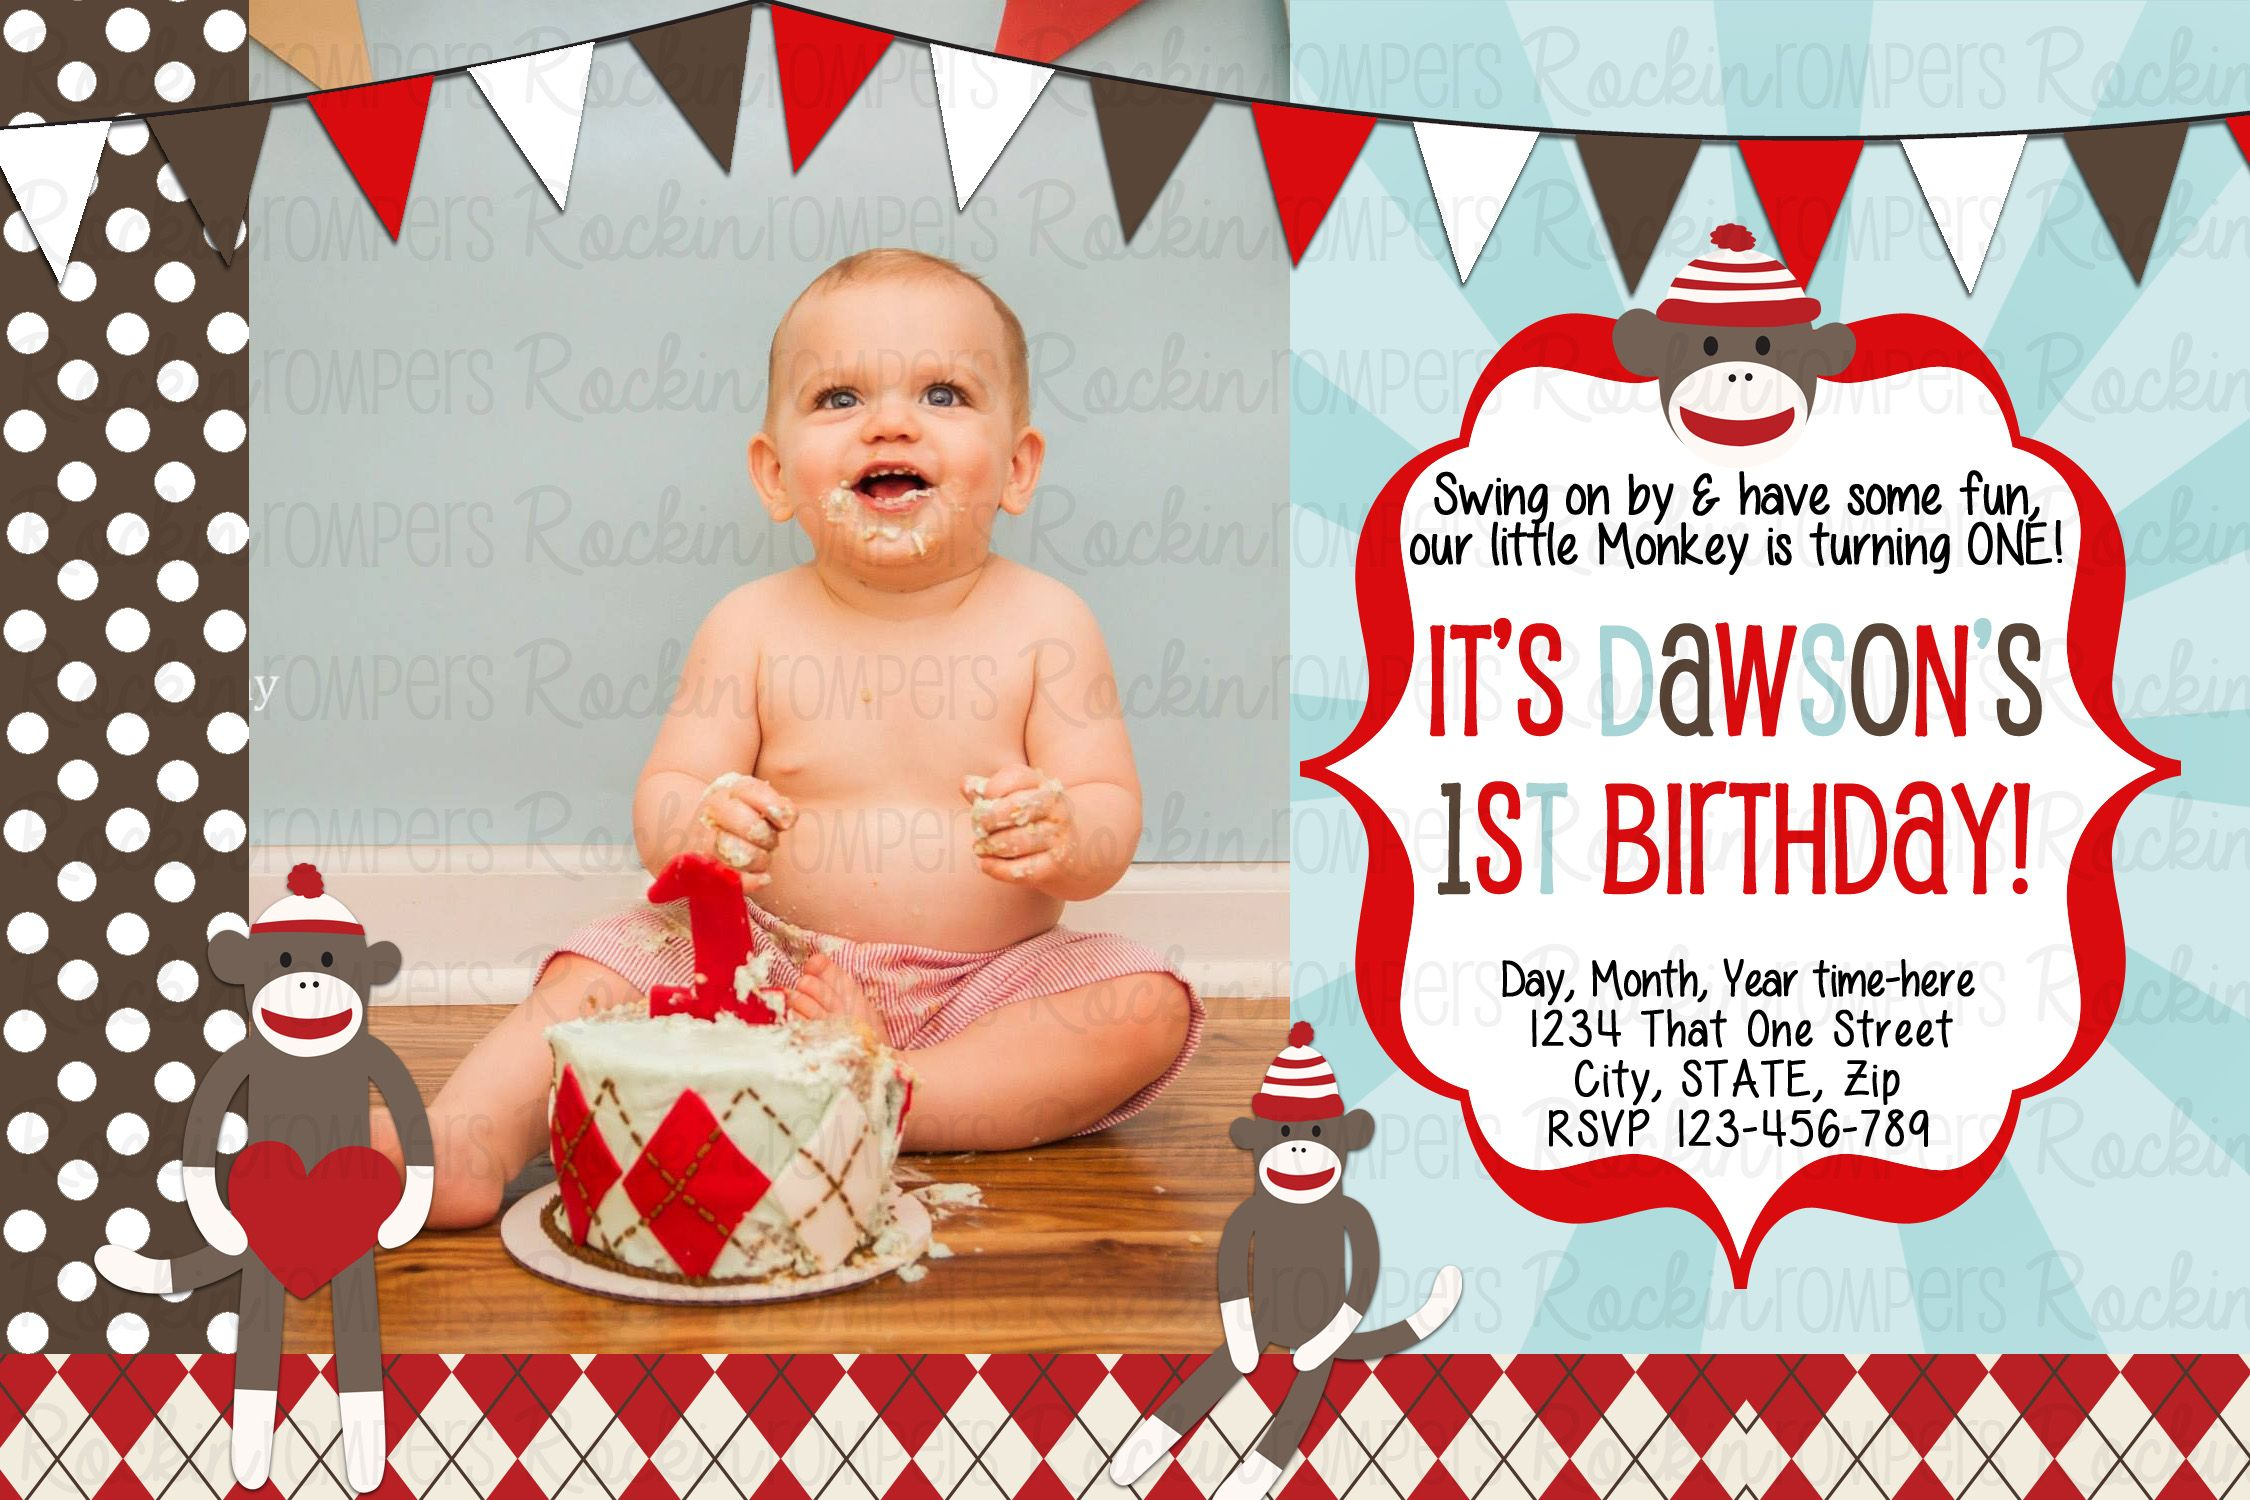 Sock Monkey Birthday Invitation Wwwfacebookcomrockinrompers Wwwetsycom